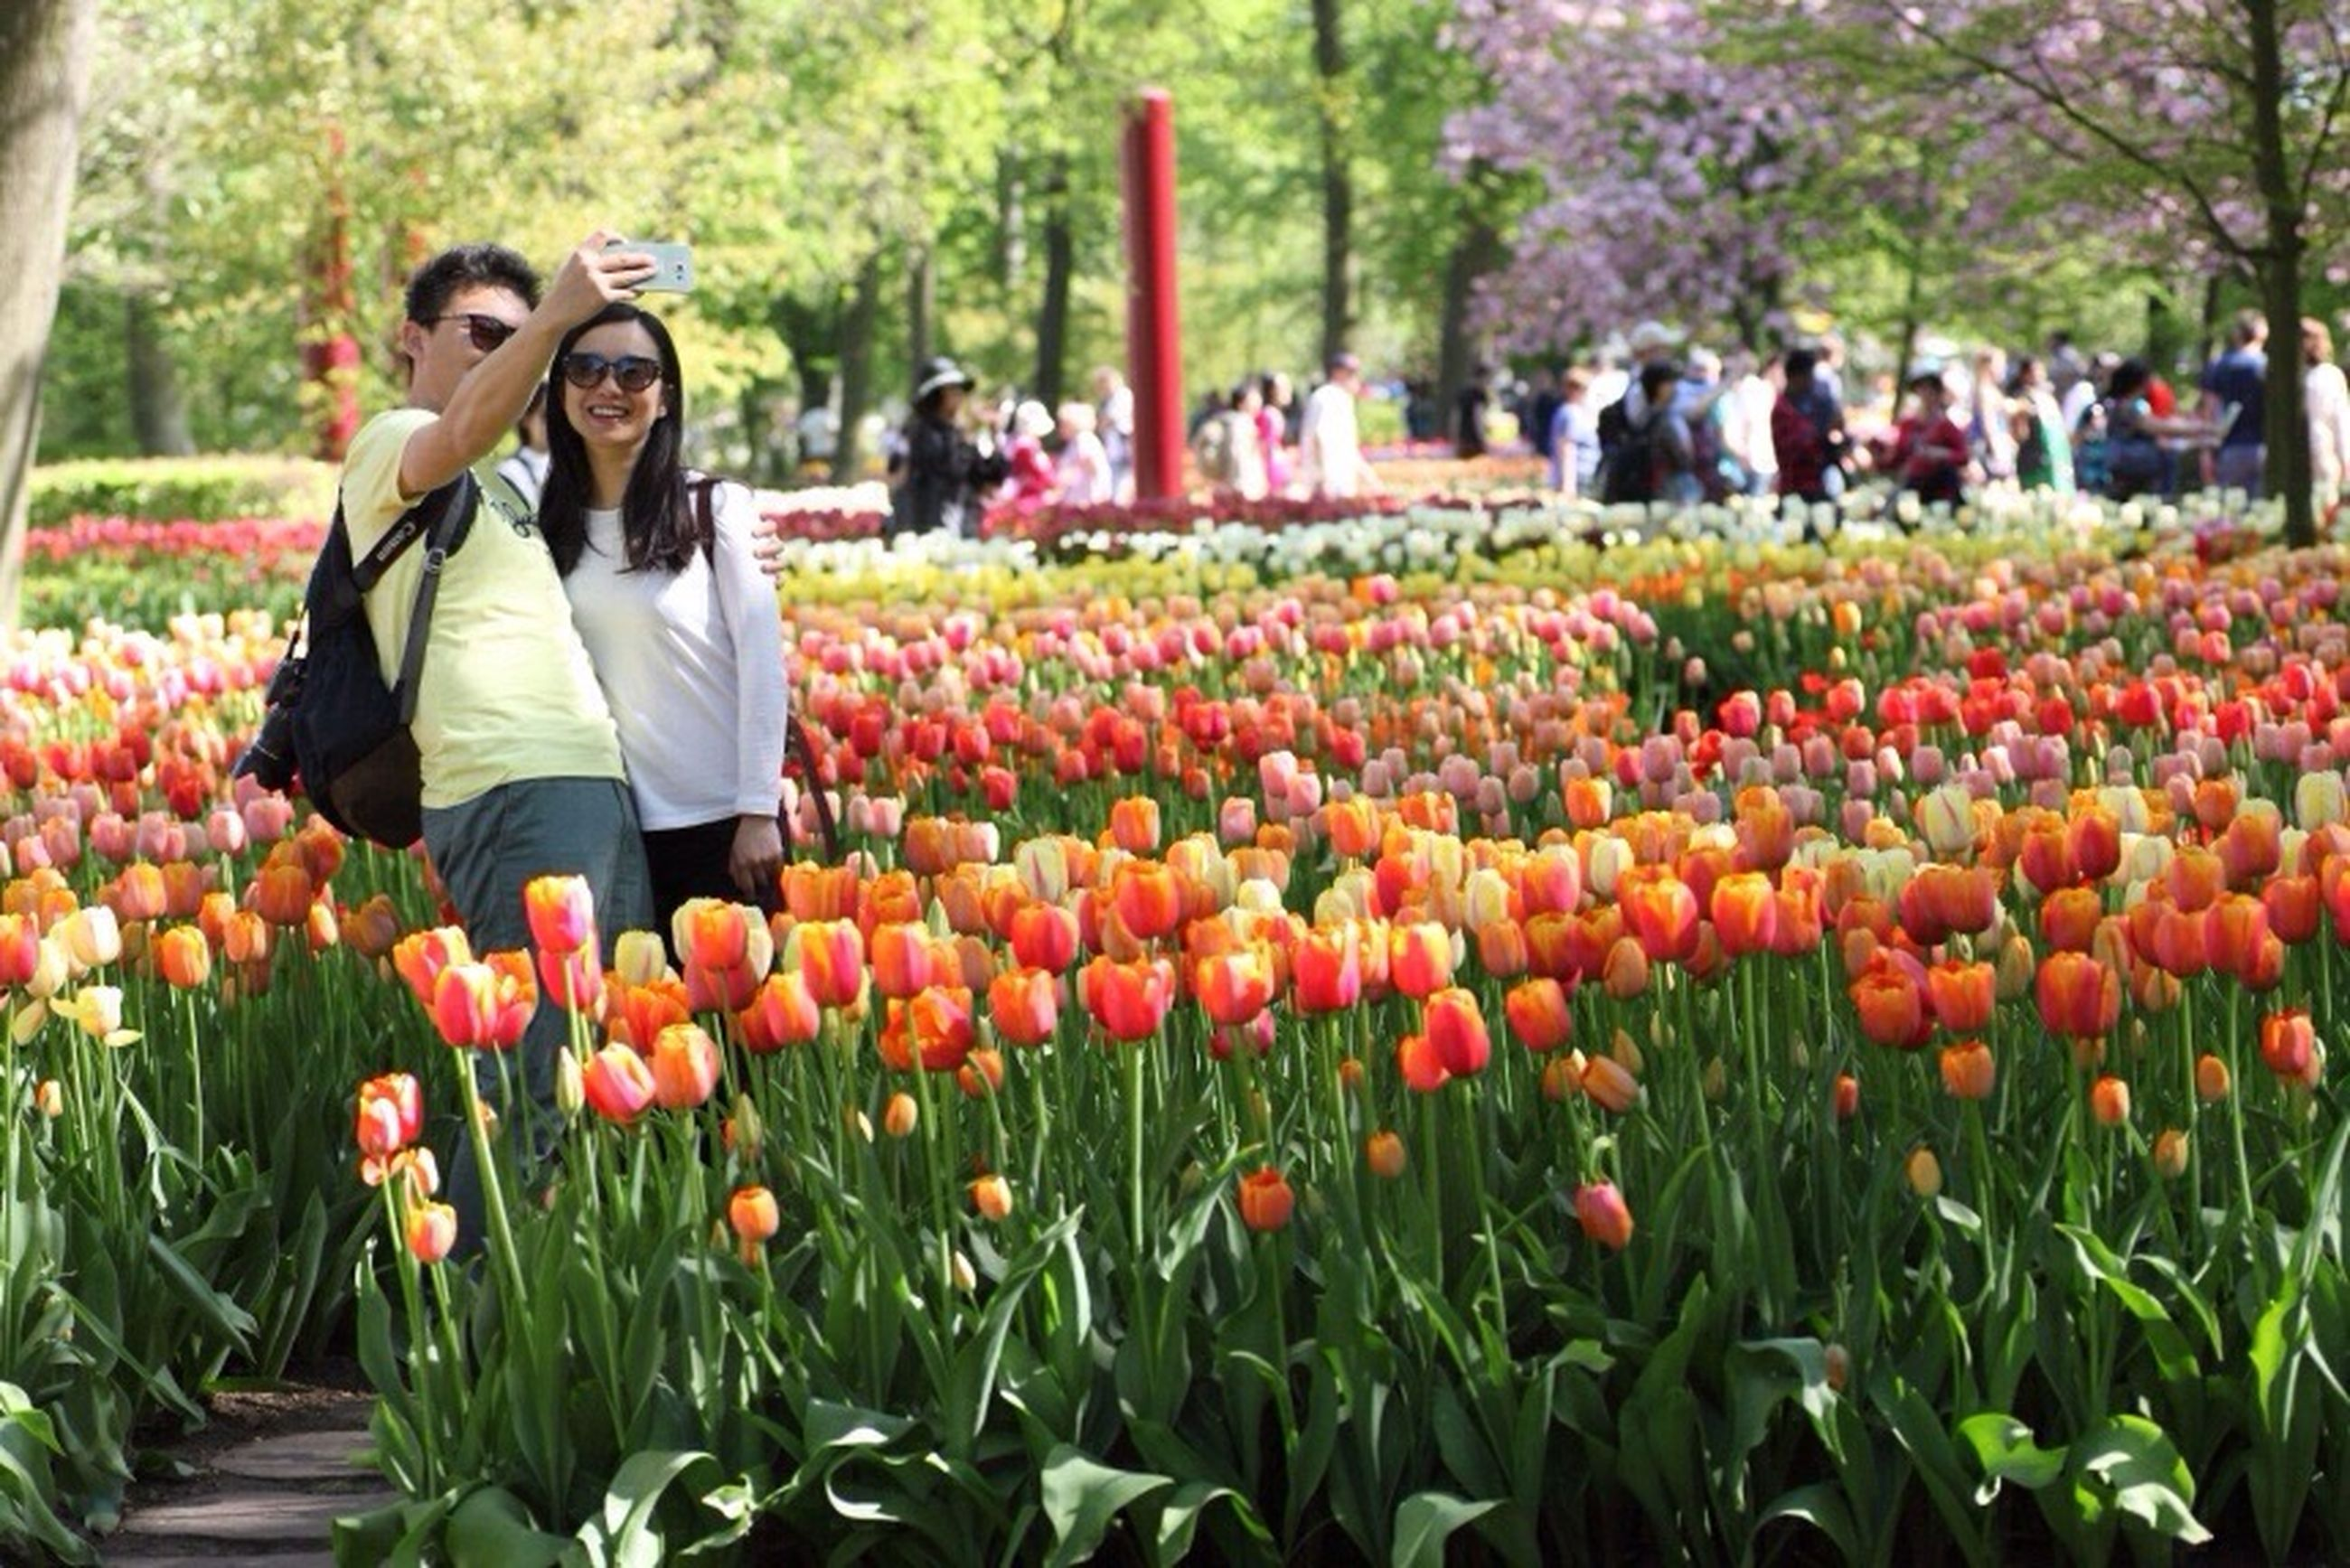 flower, freshness, leisure activity, lifestyles, beauty in nature, tulip, casual clothing, fragility, young women, person, incidental people, young adult, growth, park - man made space, field, tourist, plant, nature, tourism, vacations, day, outdoors, tranquility, focus on foreground, red, rural scene, multi colored, springtime